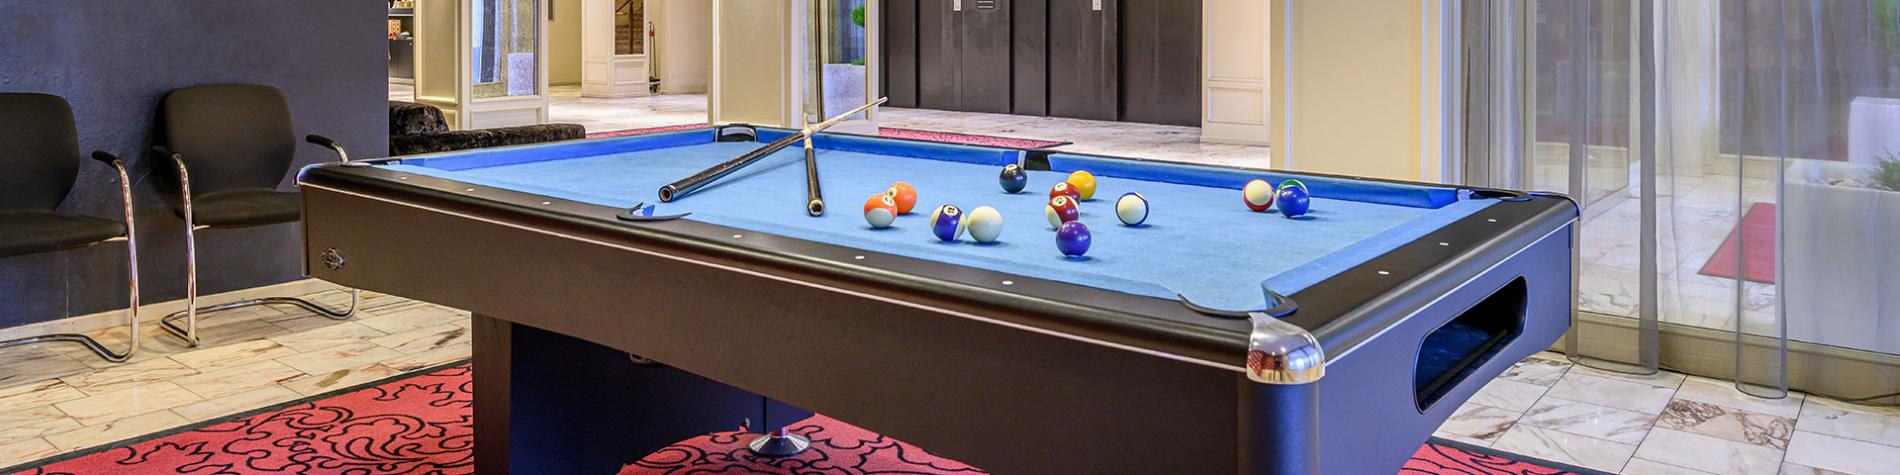 Hôtel - Mercure - Liège City Center - table - billard